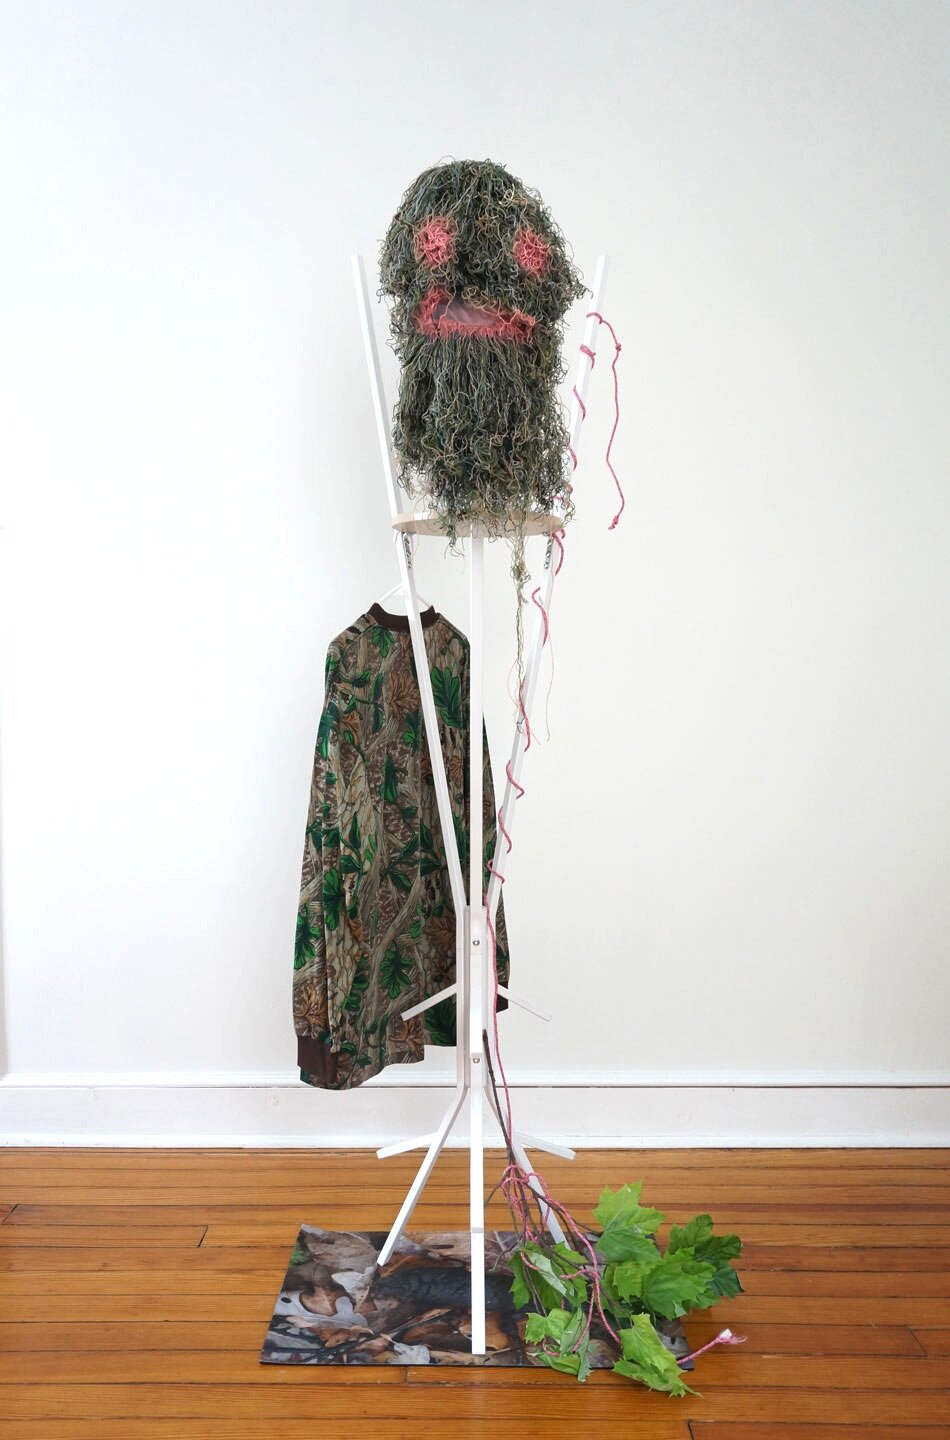 Lets Figure this Out Together, 2019, thread, acrylic, steel, artificial leaves, rubber, rope, shirt, 71 x 24 x 30in